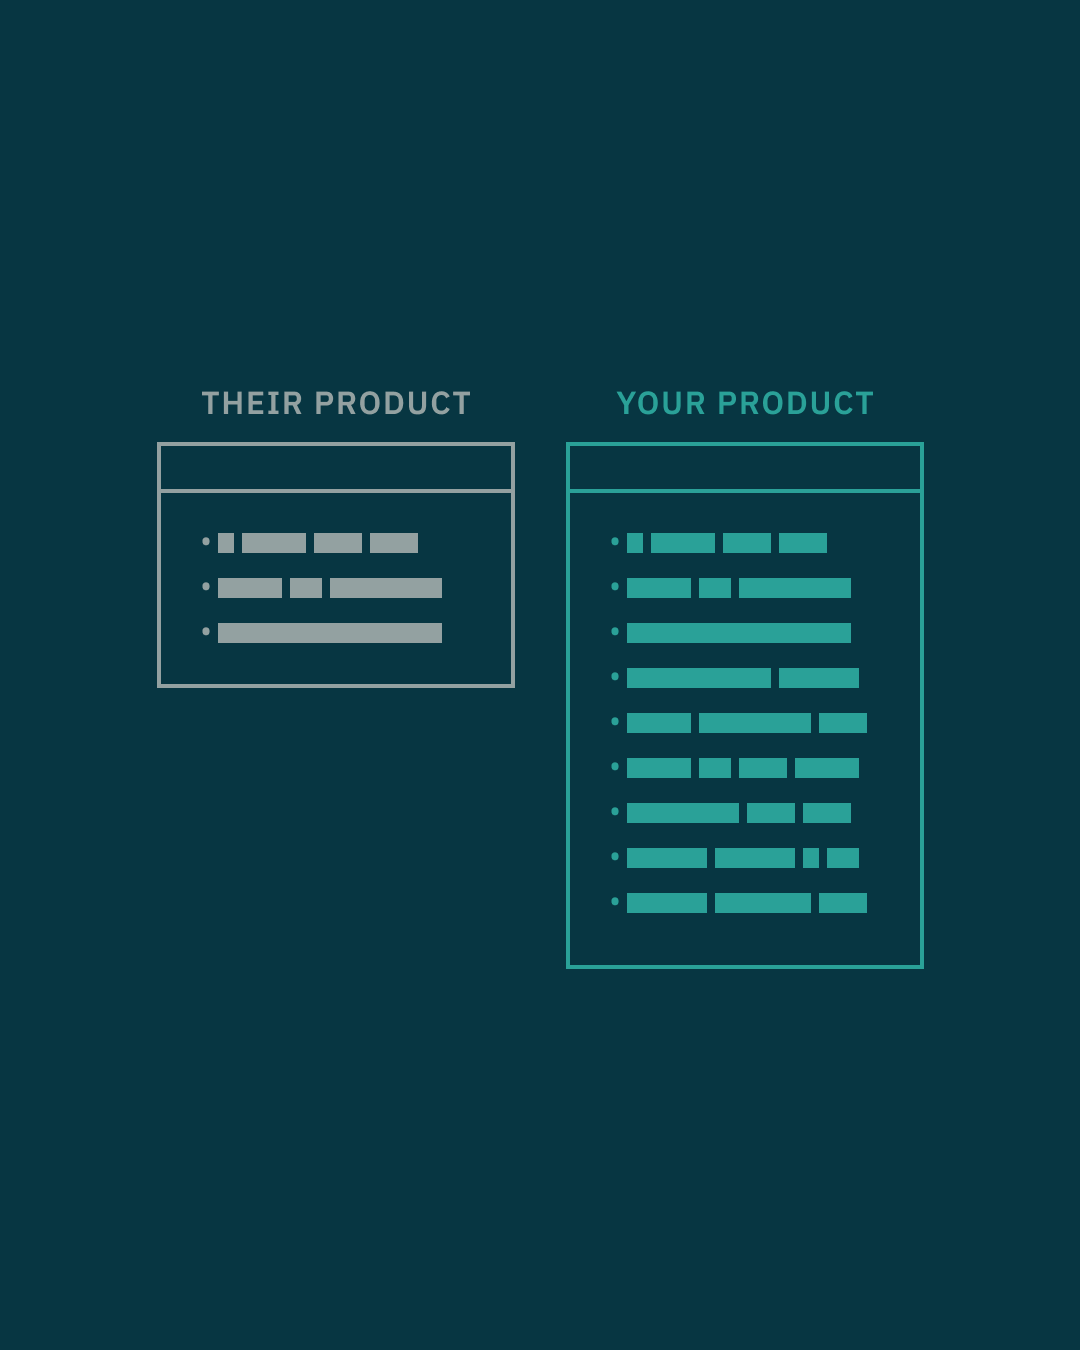 So good you can't compare it—making a mixed product